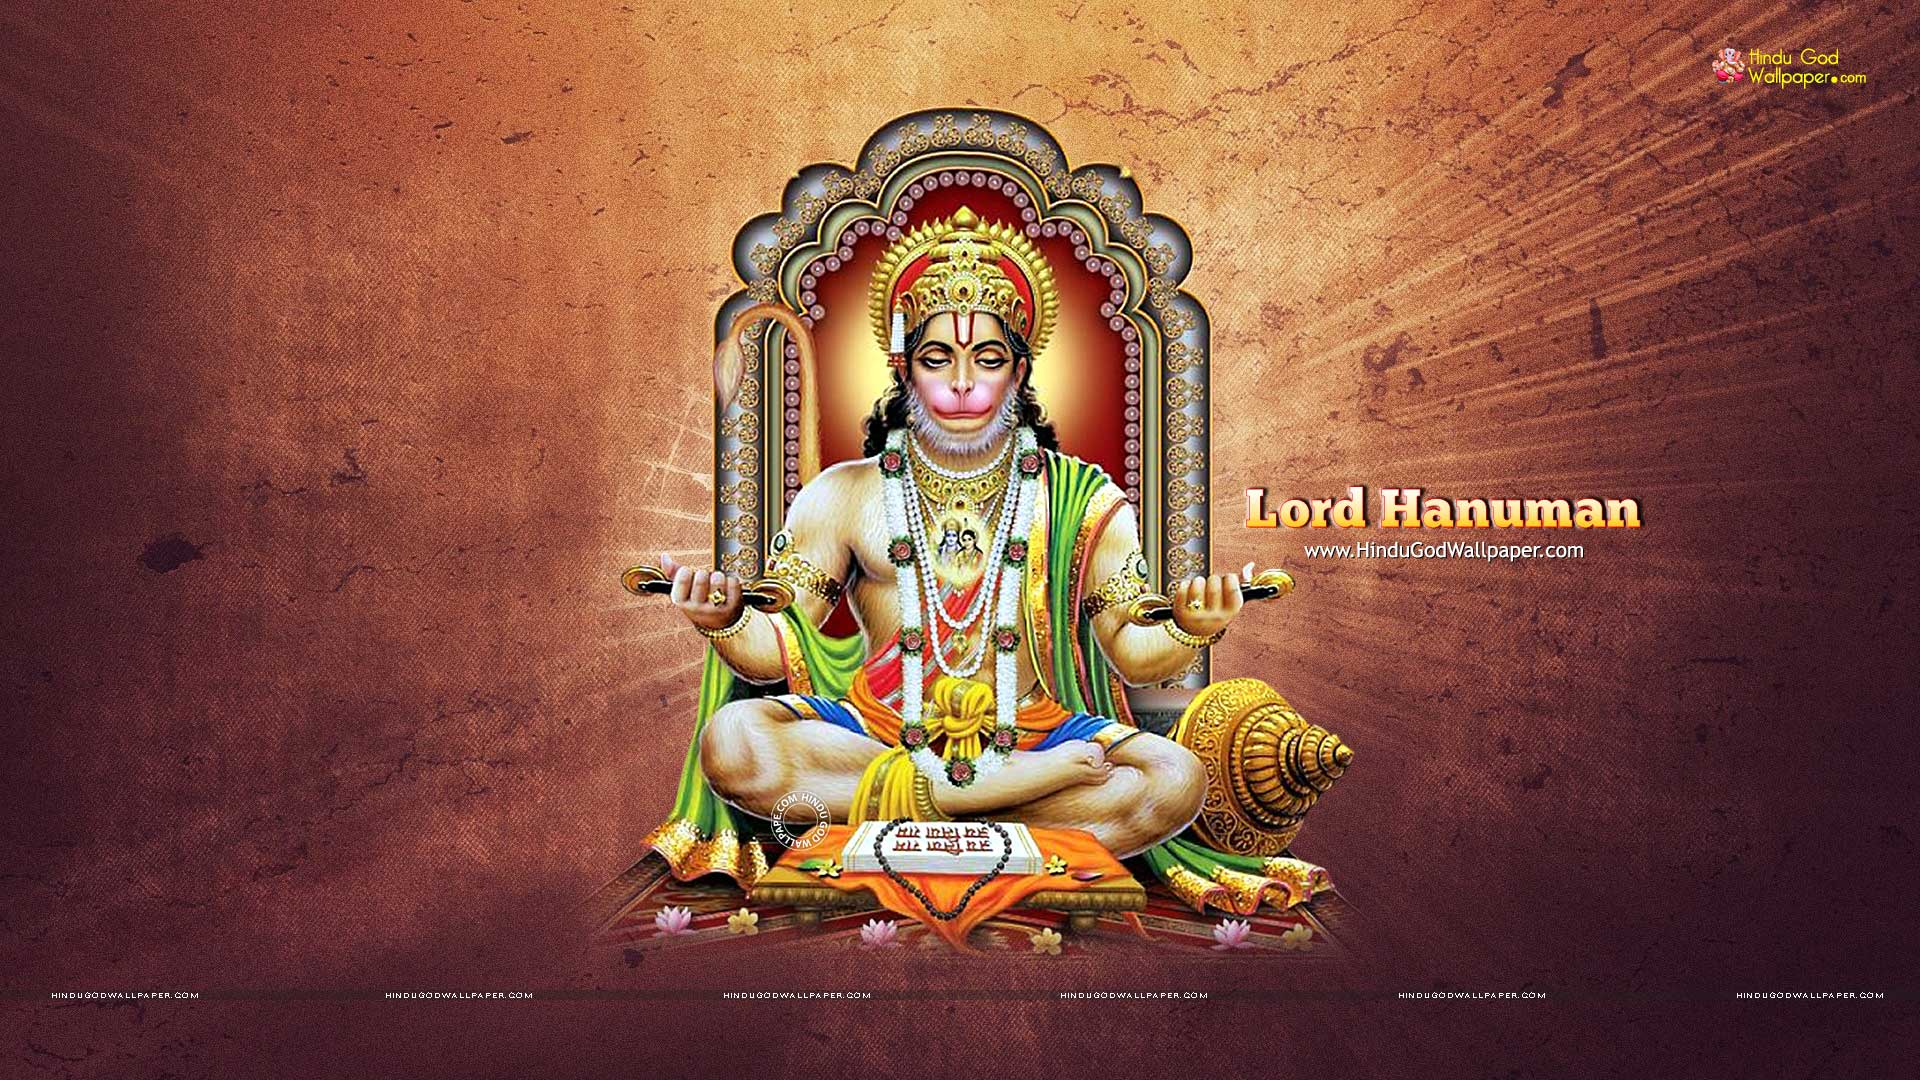 1080p Lord Hanuman Hd Wallpapers Full Size Download